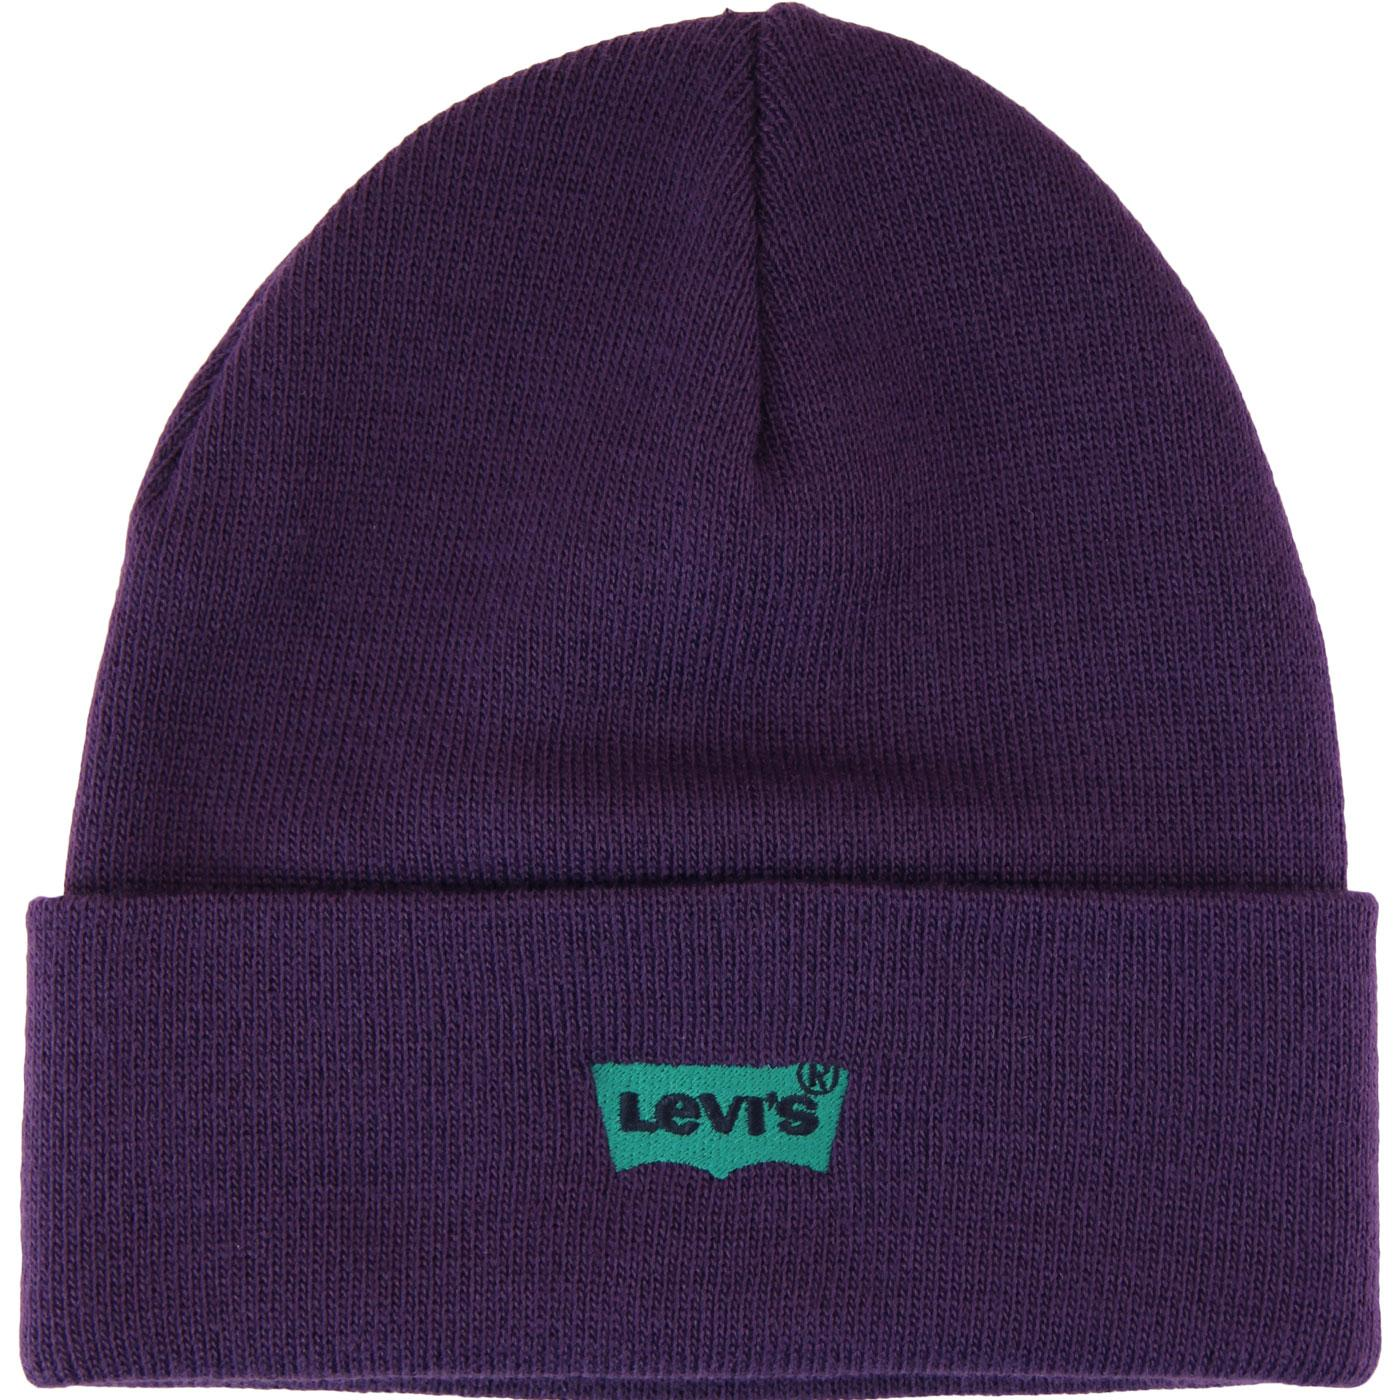 LEVI'S Retro Batwing Embroidered Knit Beanie Hat P